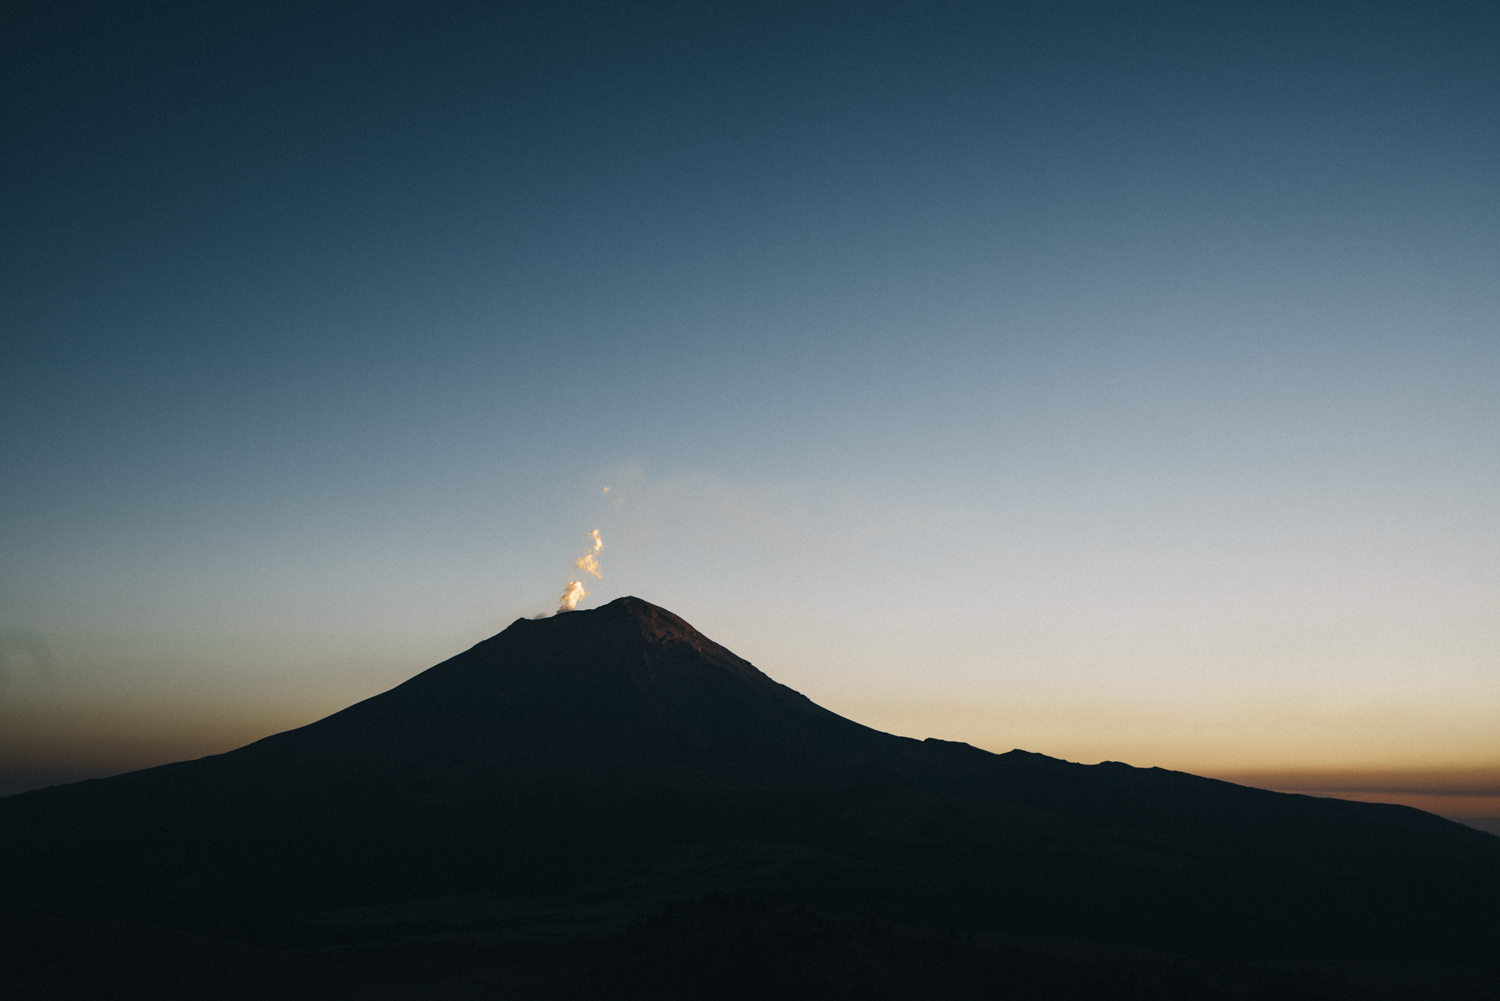 Volcanic gas rises from Mt. Popocatepetl, The Warrior, at sunset.